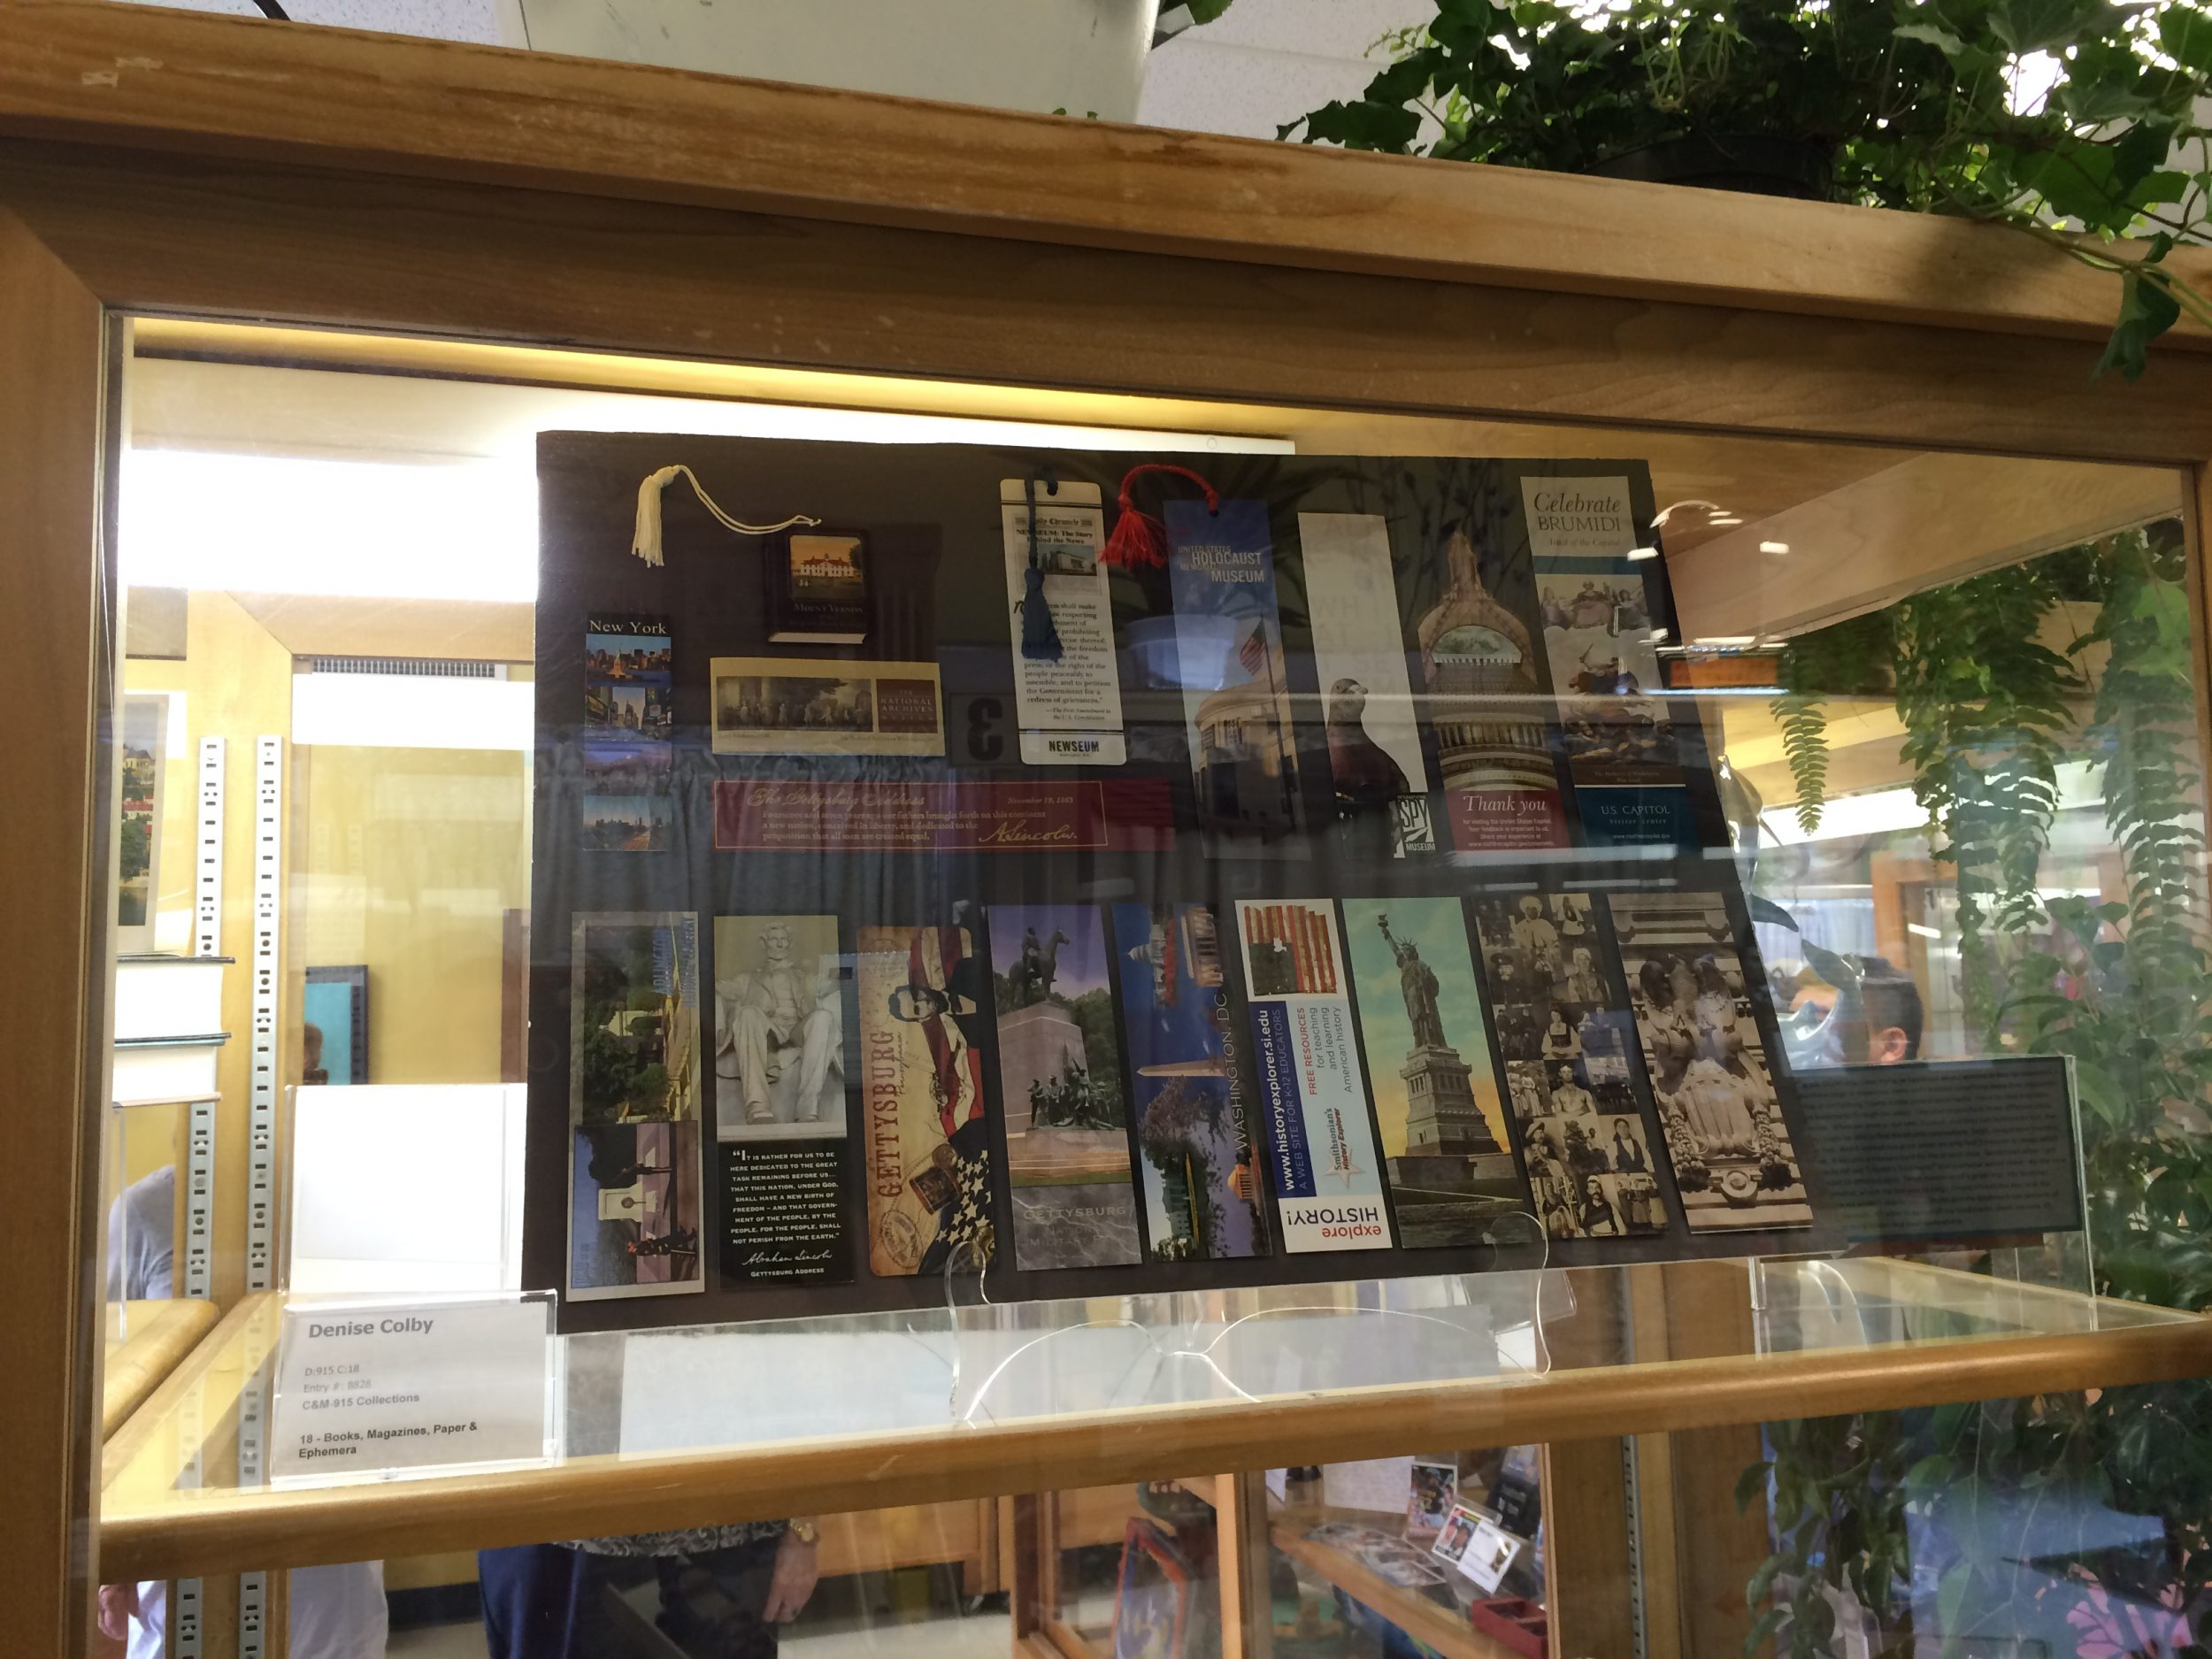 Photo of Bookmarks collected by Denise M. Colby on her DC/NY Trip in 2015